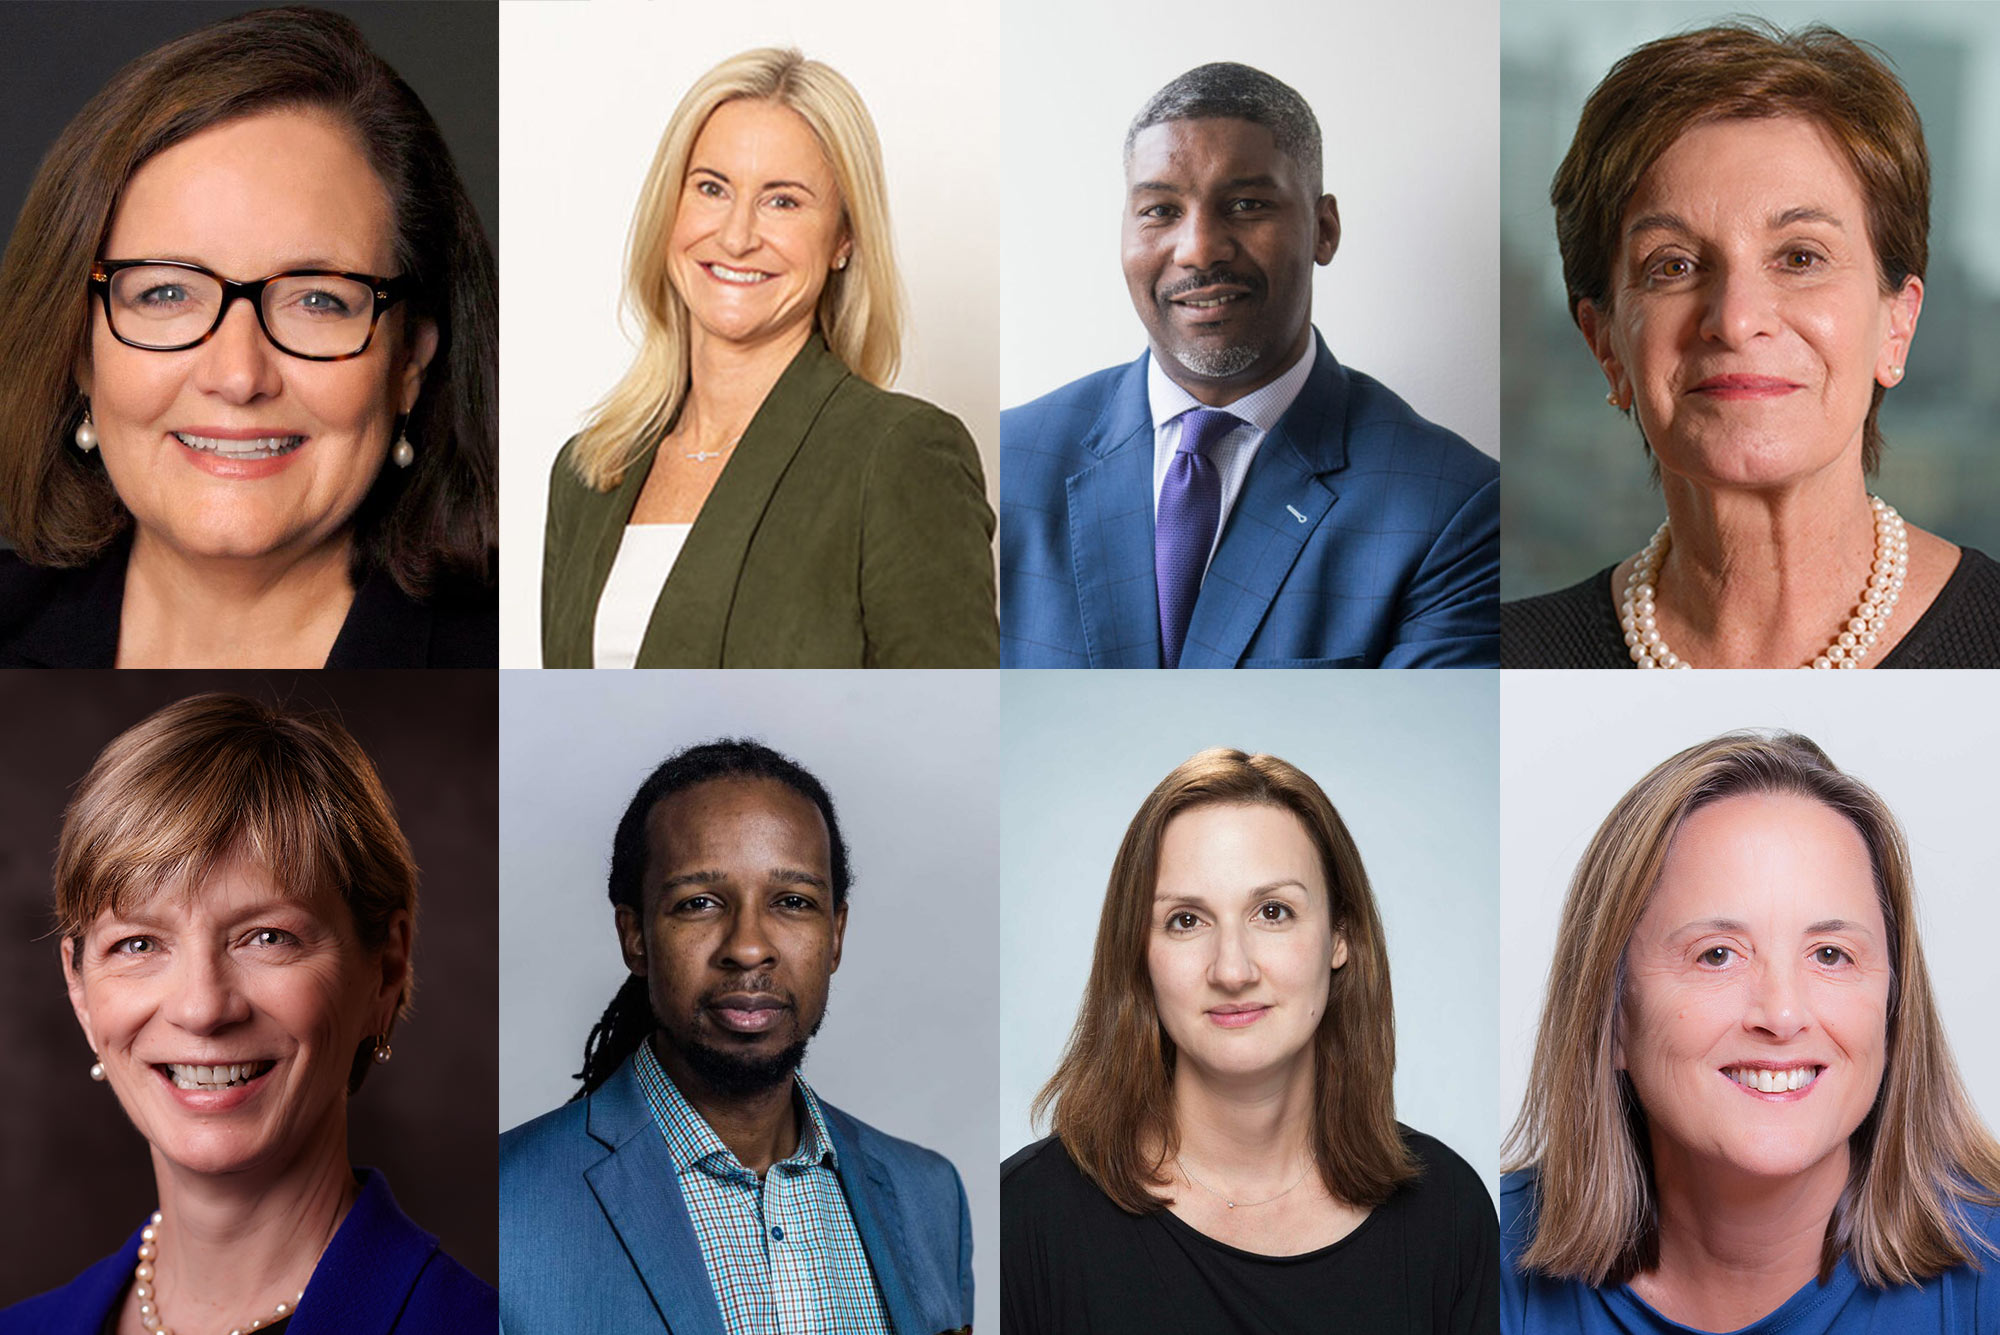 Headshots of Boston Business Journal 50 Leaders Making a Difference with ties to BU. Composite image shows formal headshots in the following order: Kate Walsh, Lori Cashman, Paul Francisco, Jeanette Ives Erickson, Marylou Sudders, Ibram Kendi, Catherine Klapperich, Kate Barrand.